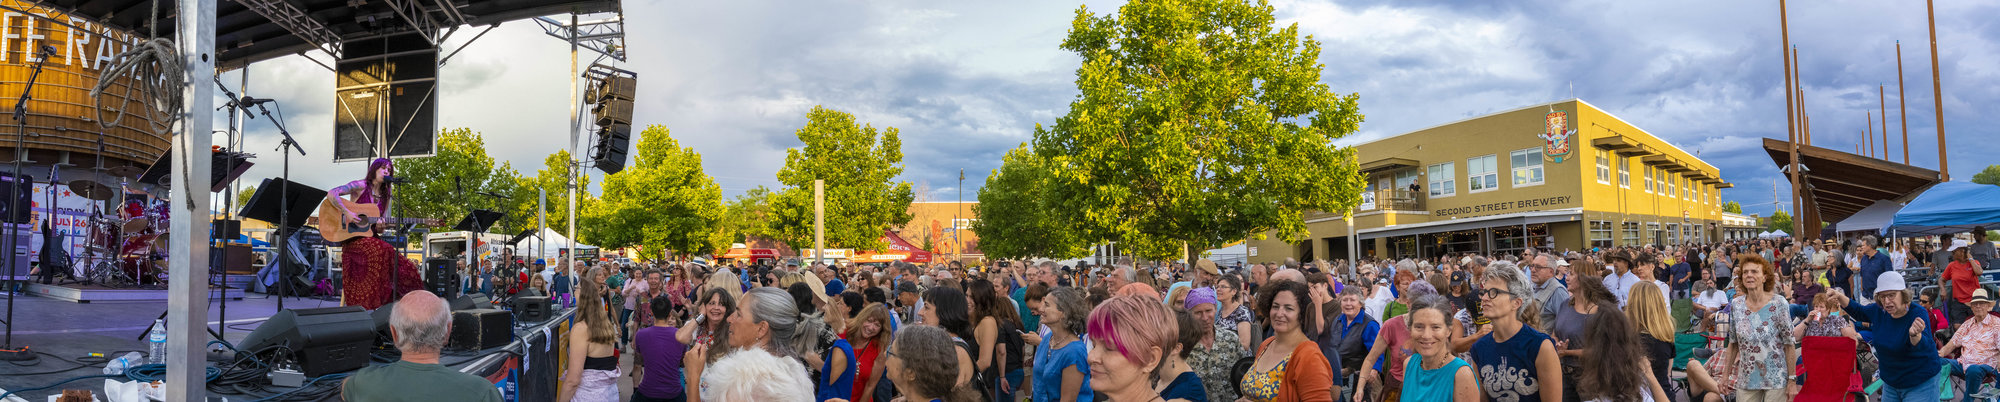 Panorama of Best of Santa Fe 2019 Aretha Franklin tribute concert